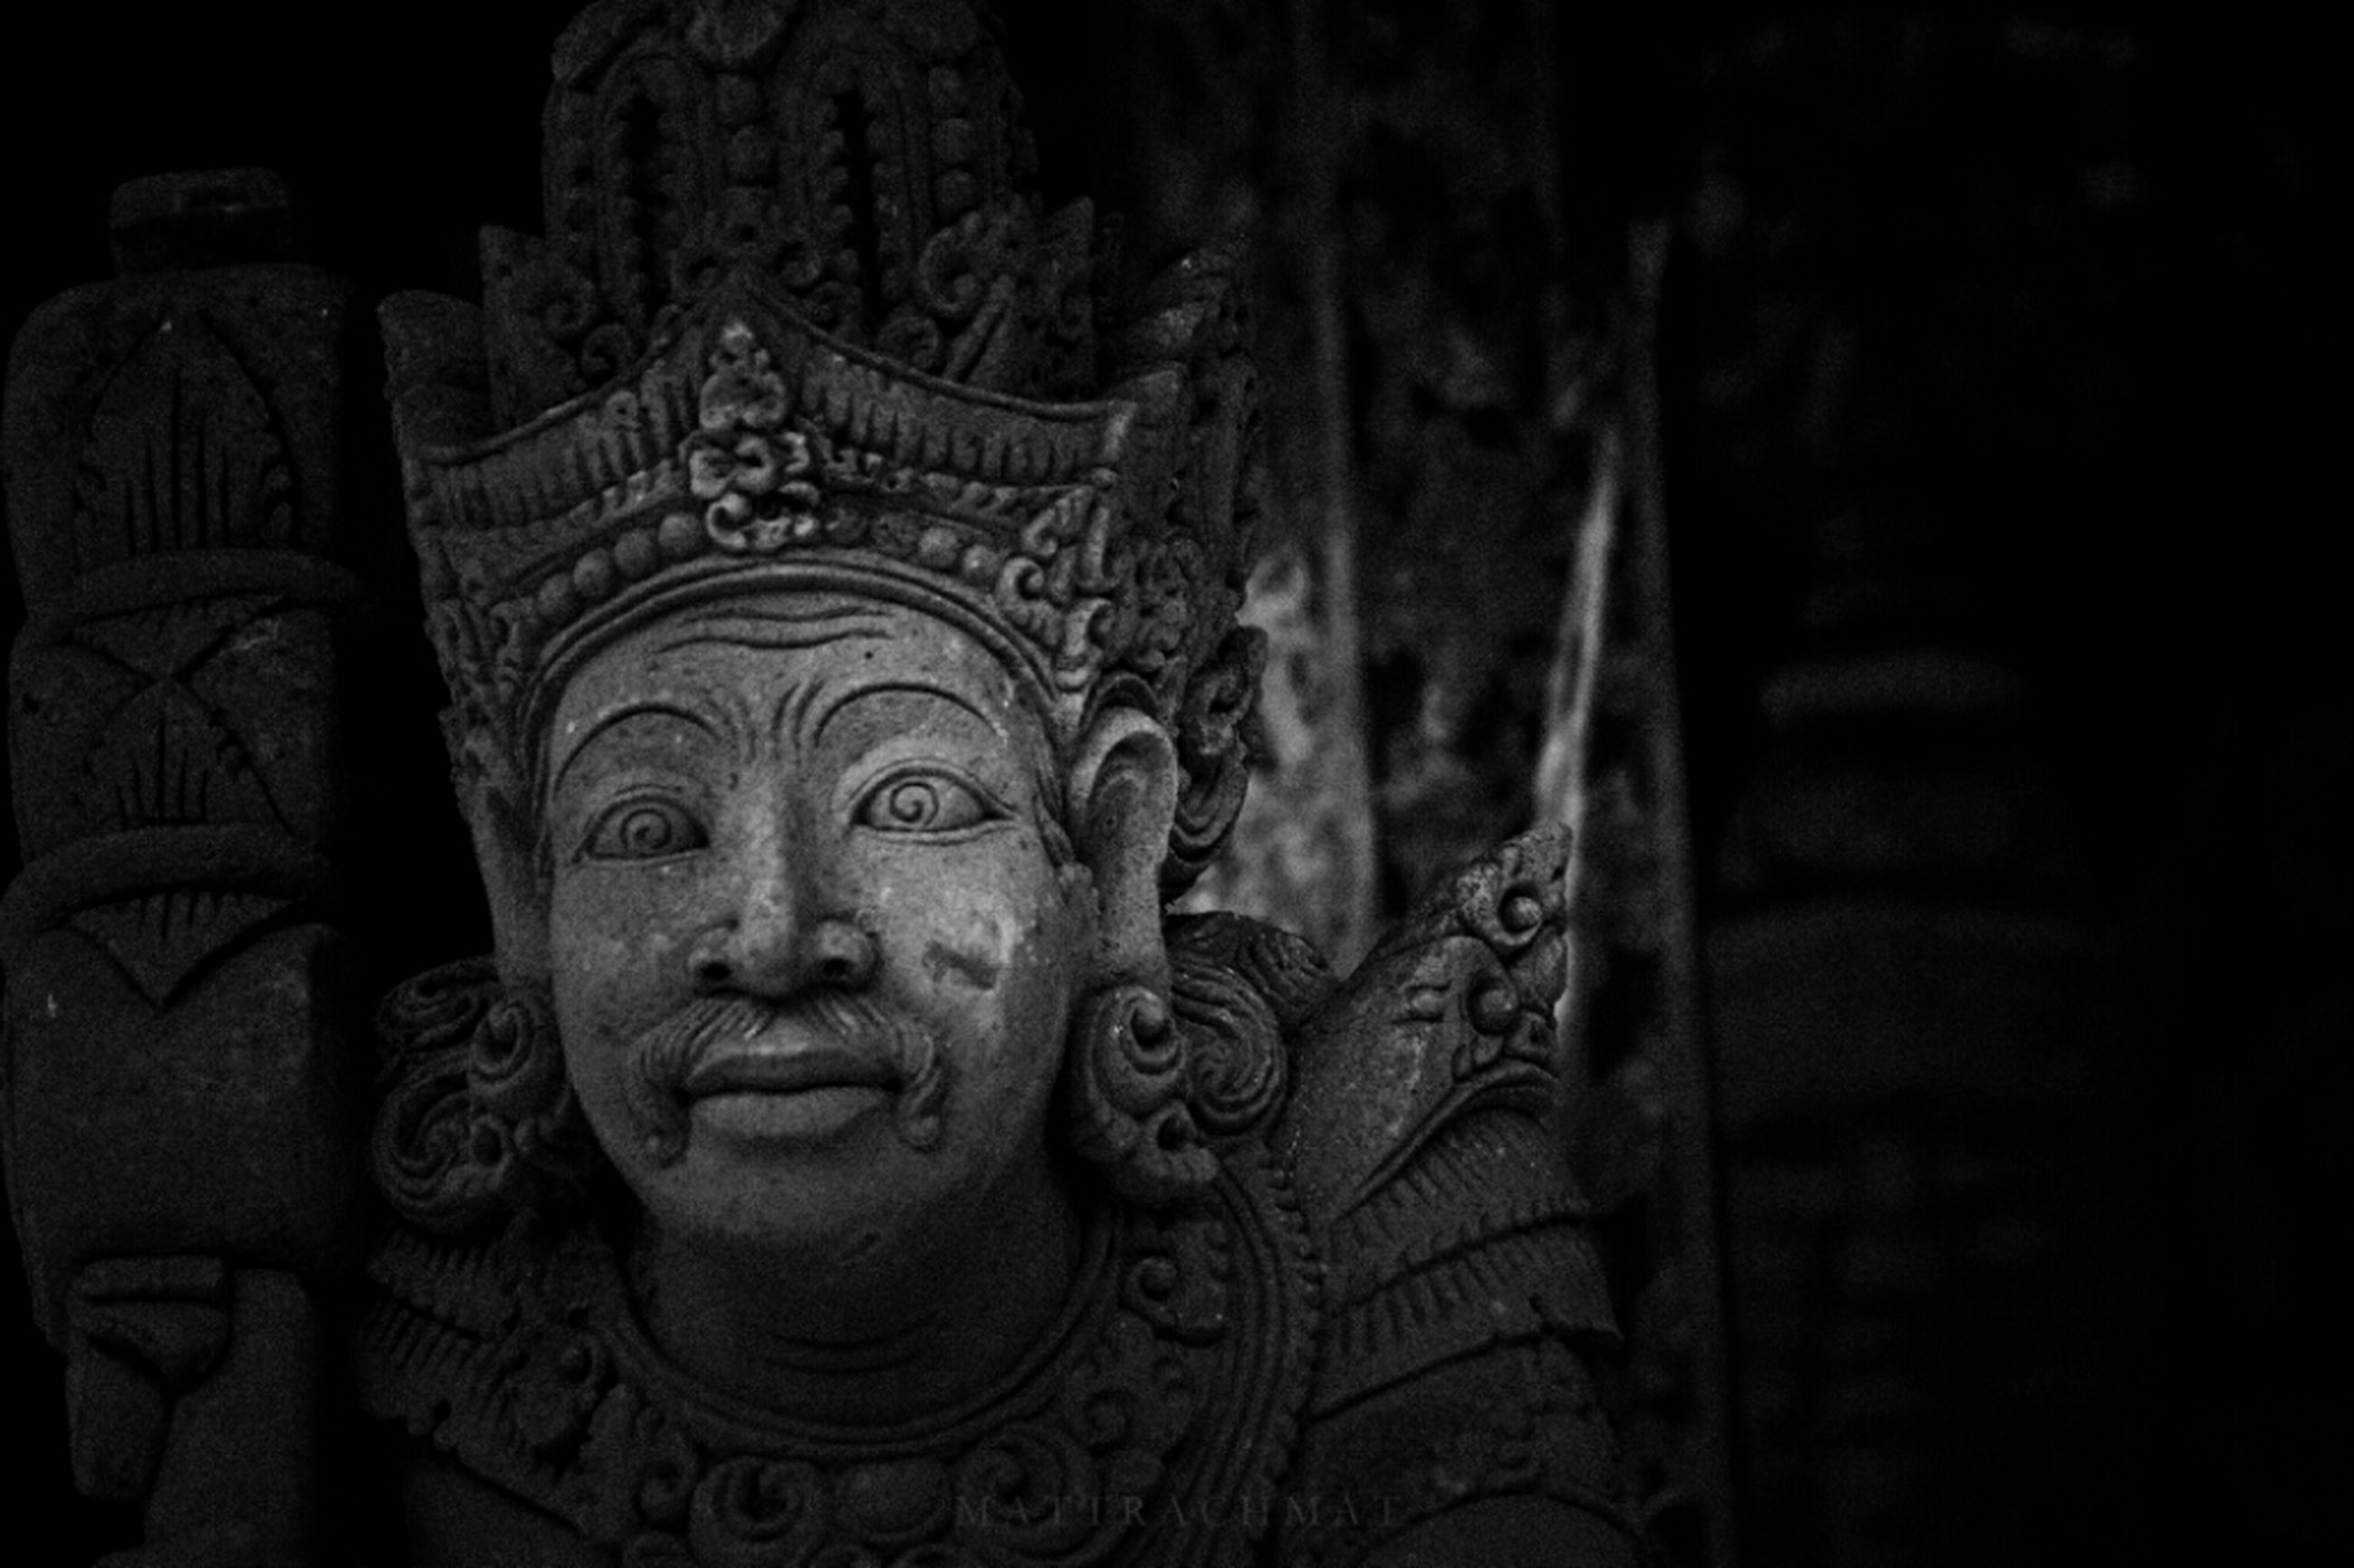 art and craft, art, creativity, statue, sculpture, human representation, religion, carving - craft product, spirituality, history, indoors, place of worship, ancient, carving, stone material, close-up, famous place